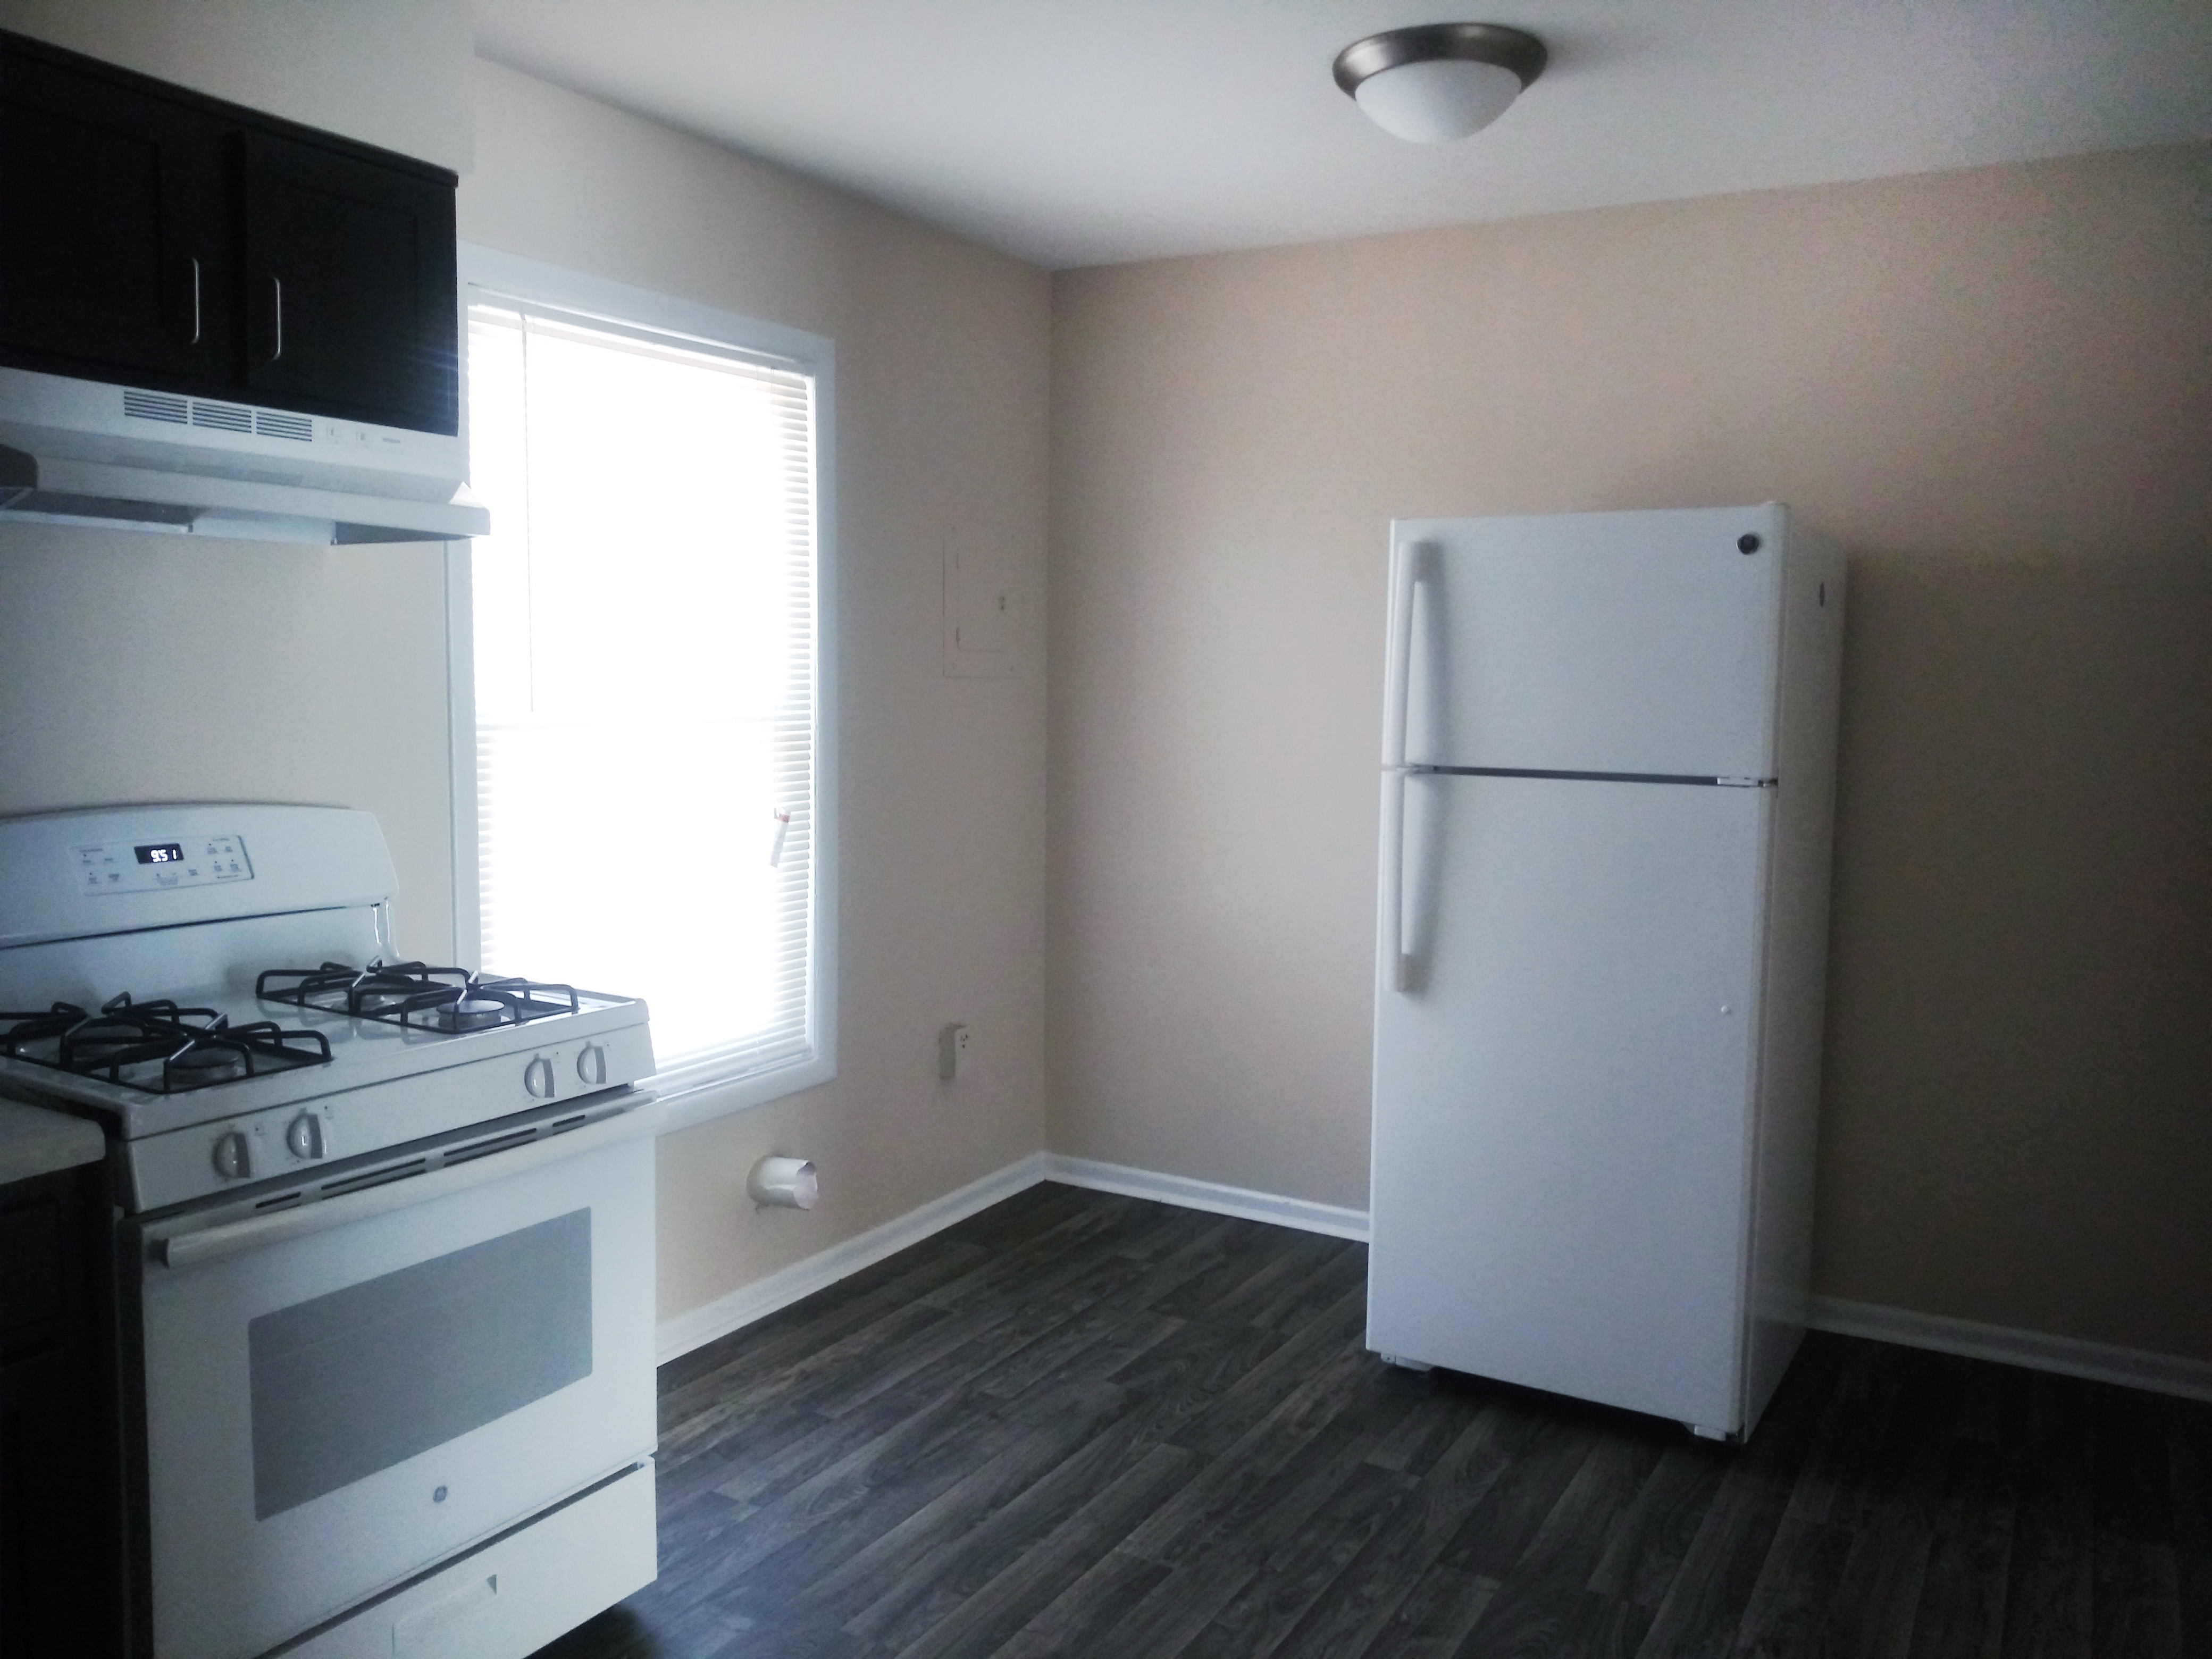 Southwood (Affordable Housing; Income Limit Restrictions Apply) rental